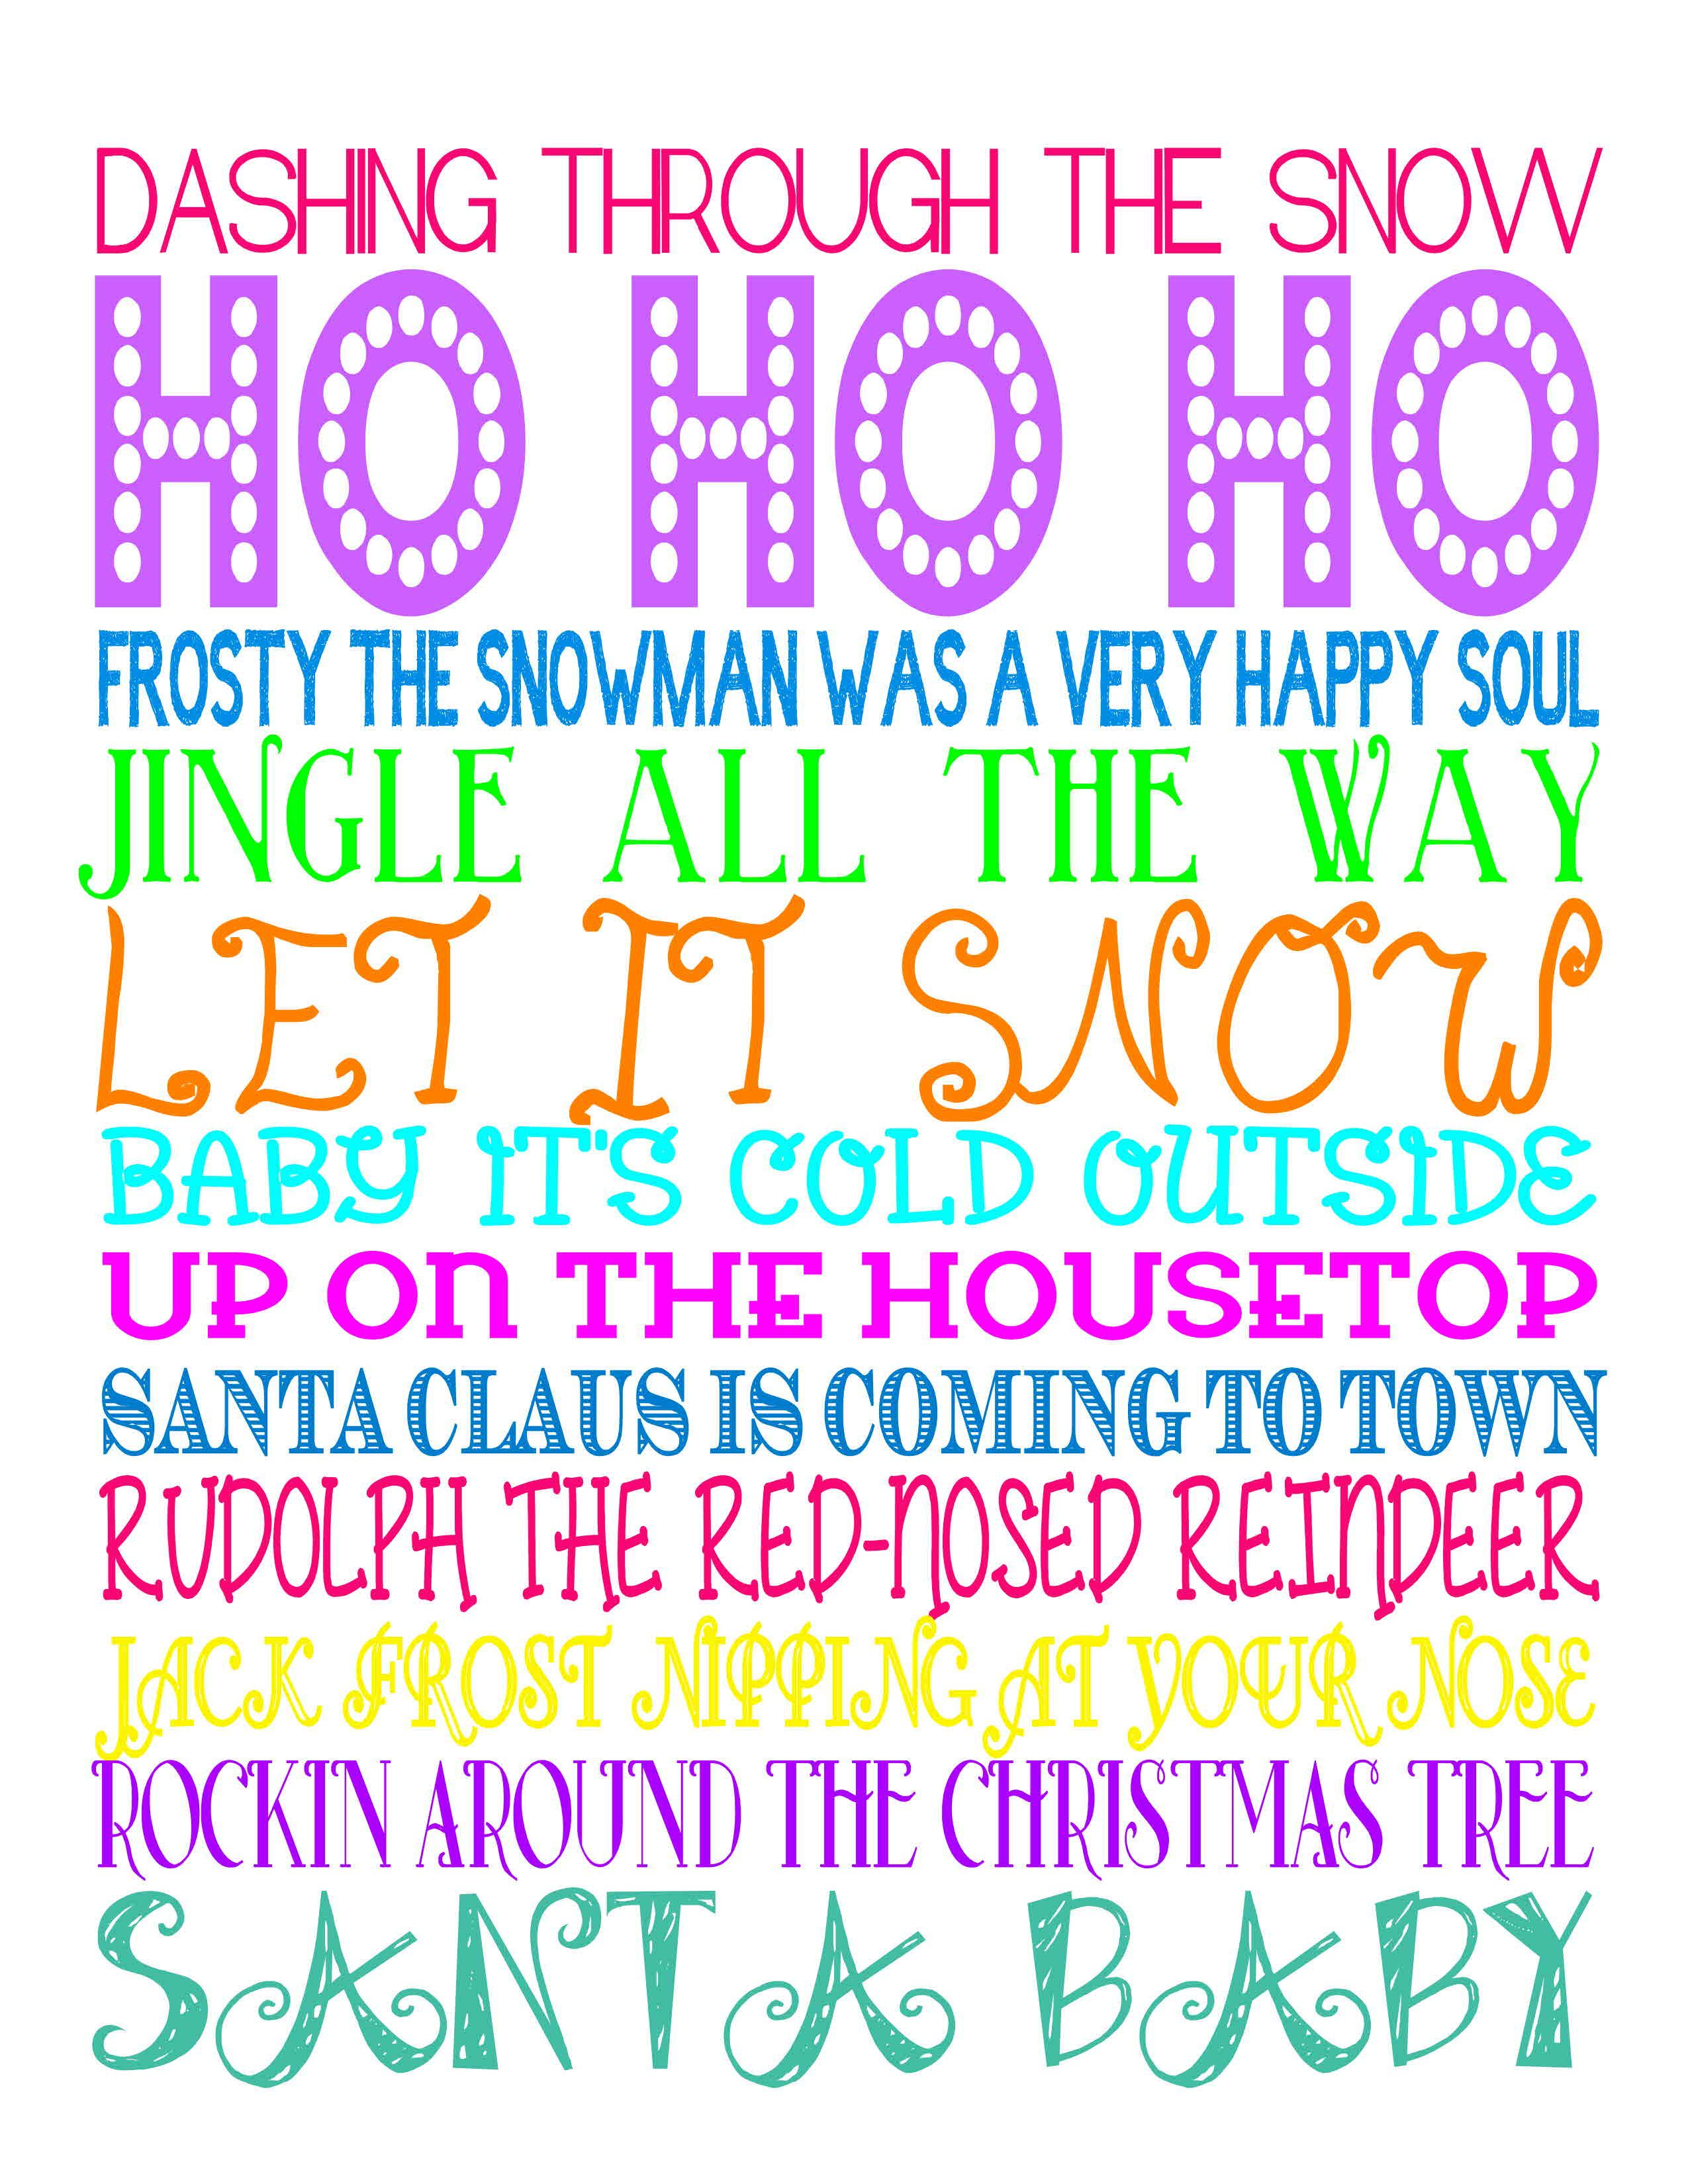 Cute christmas songs subway art free printable www cute christmas songs subway art free printable giggleandprint pronofoot35fo Image collections